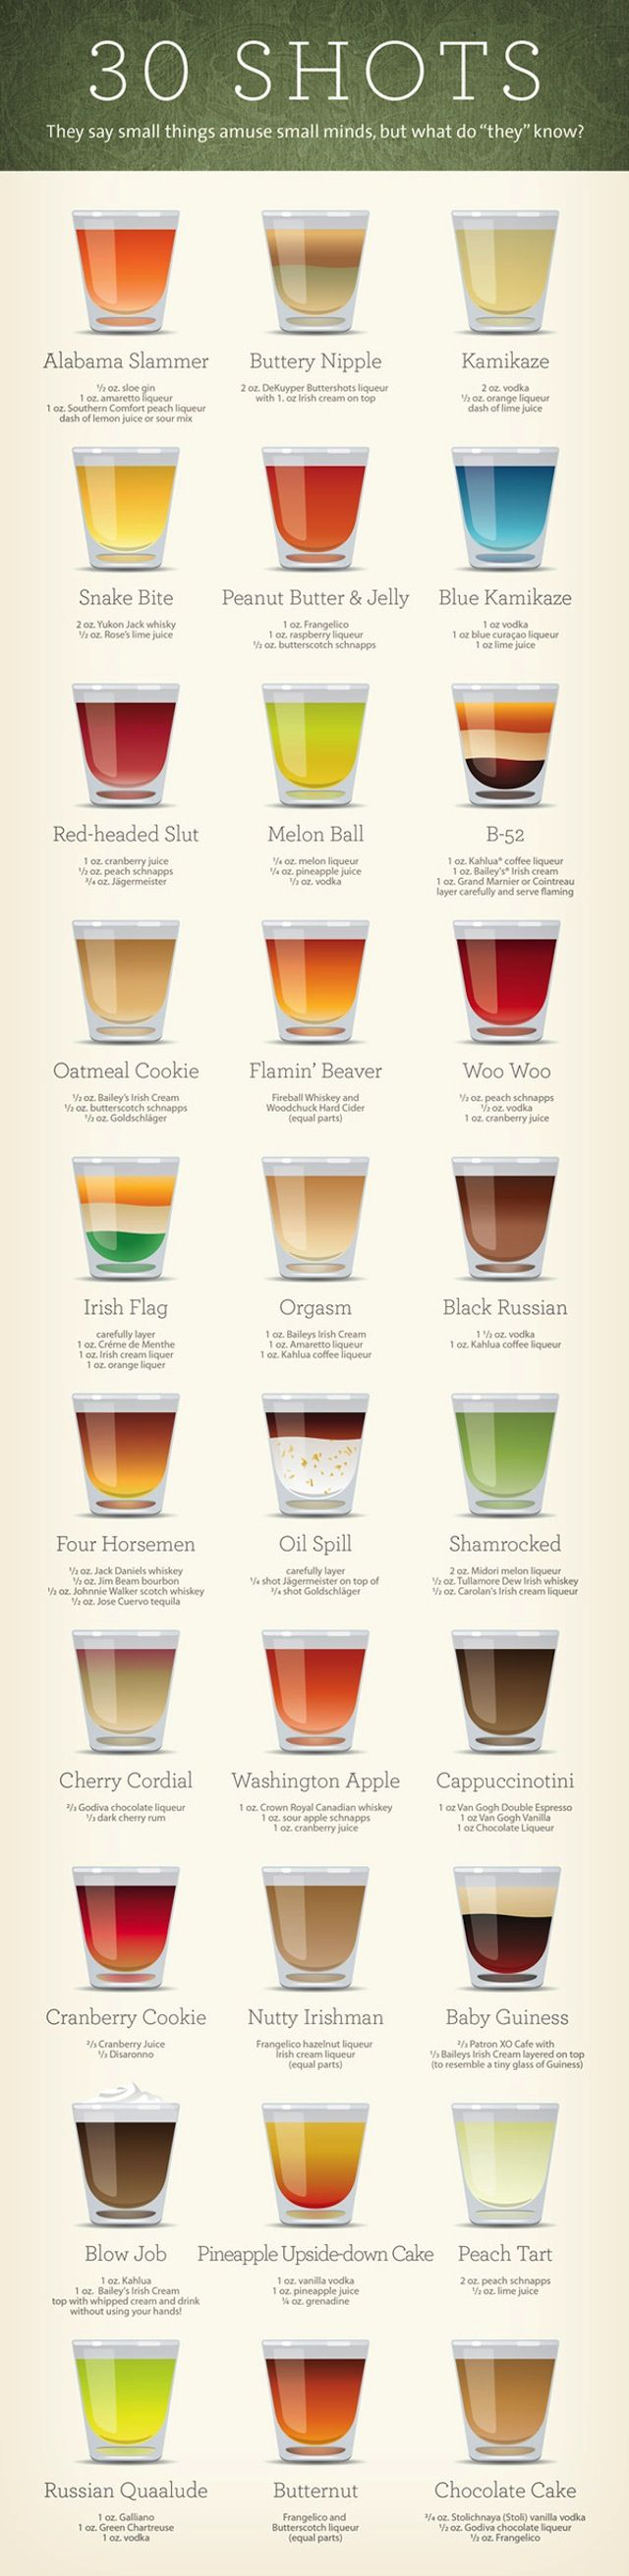 30 shots in full color. #Whiskey, #Vodka, #Gin, Tequila @courtneyjcaldwe